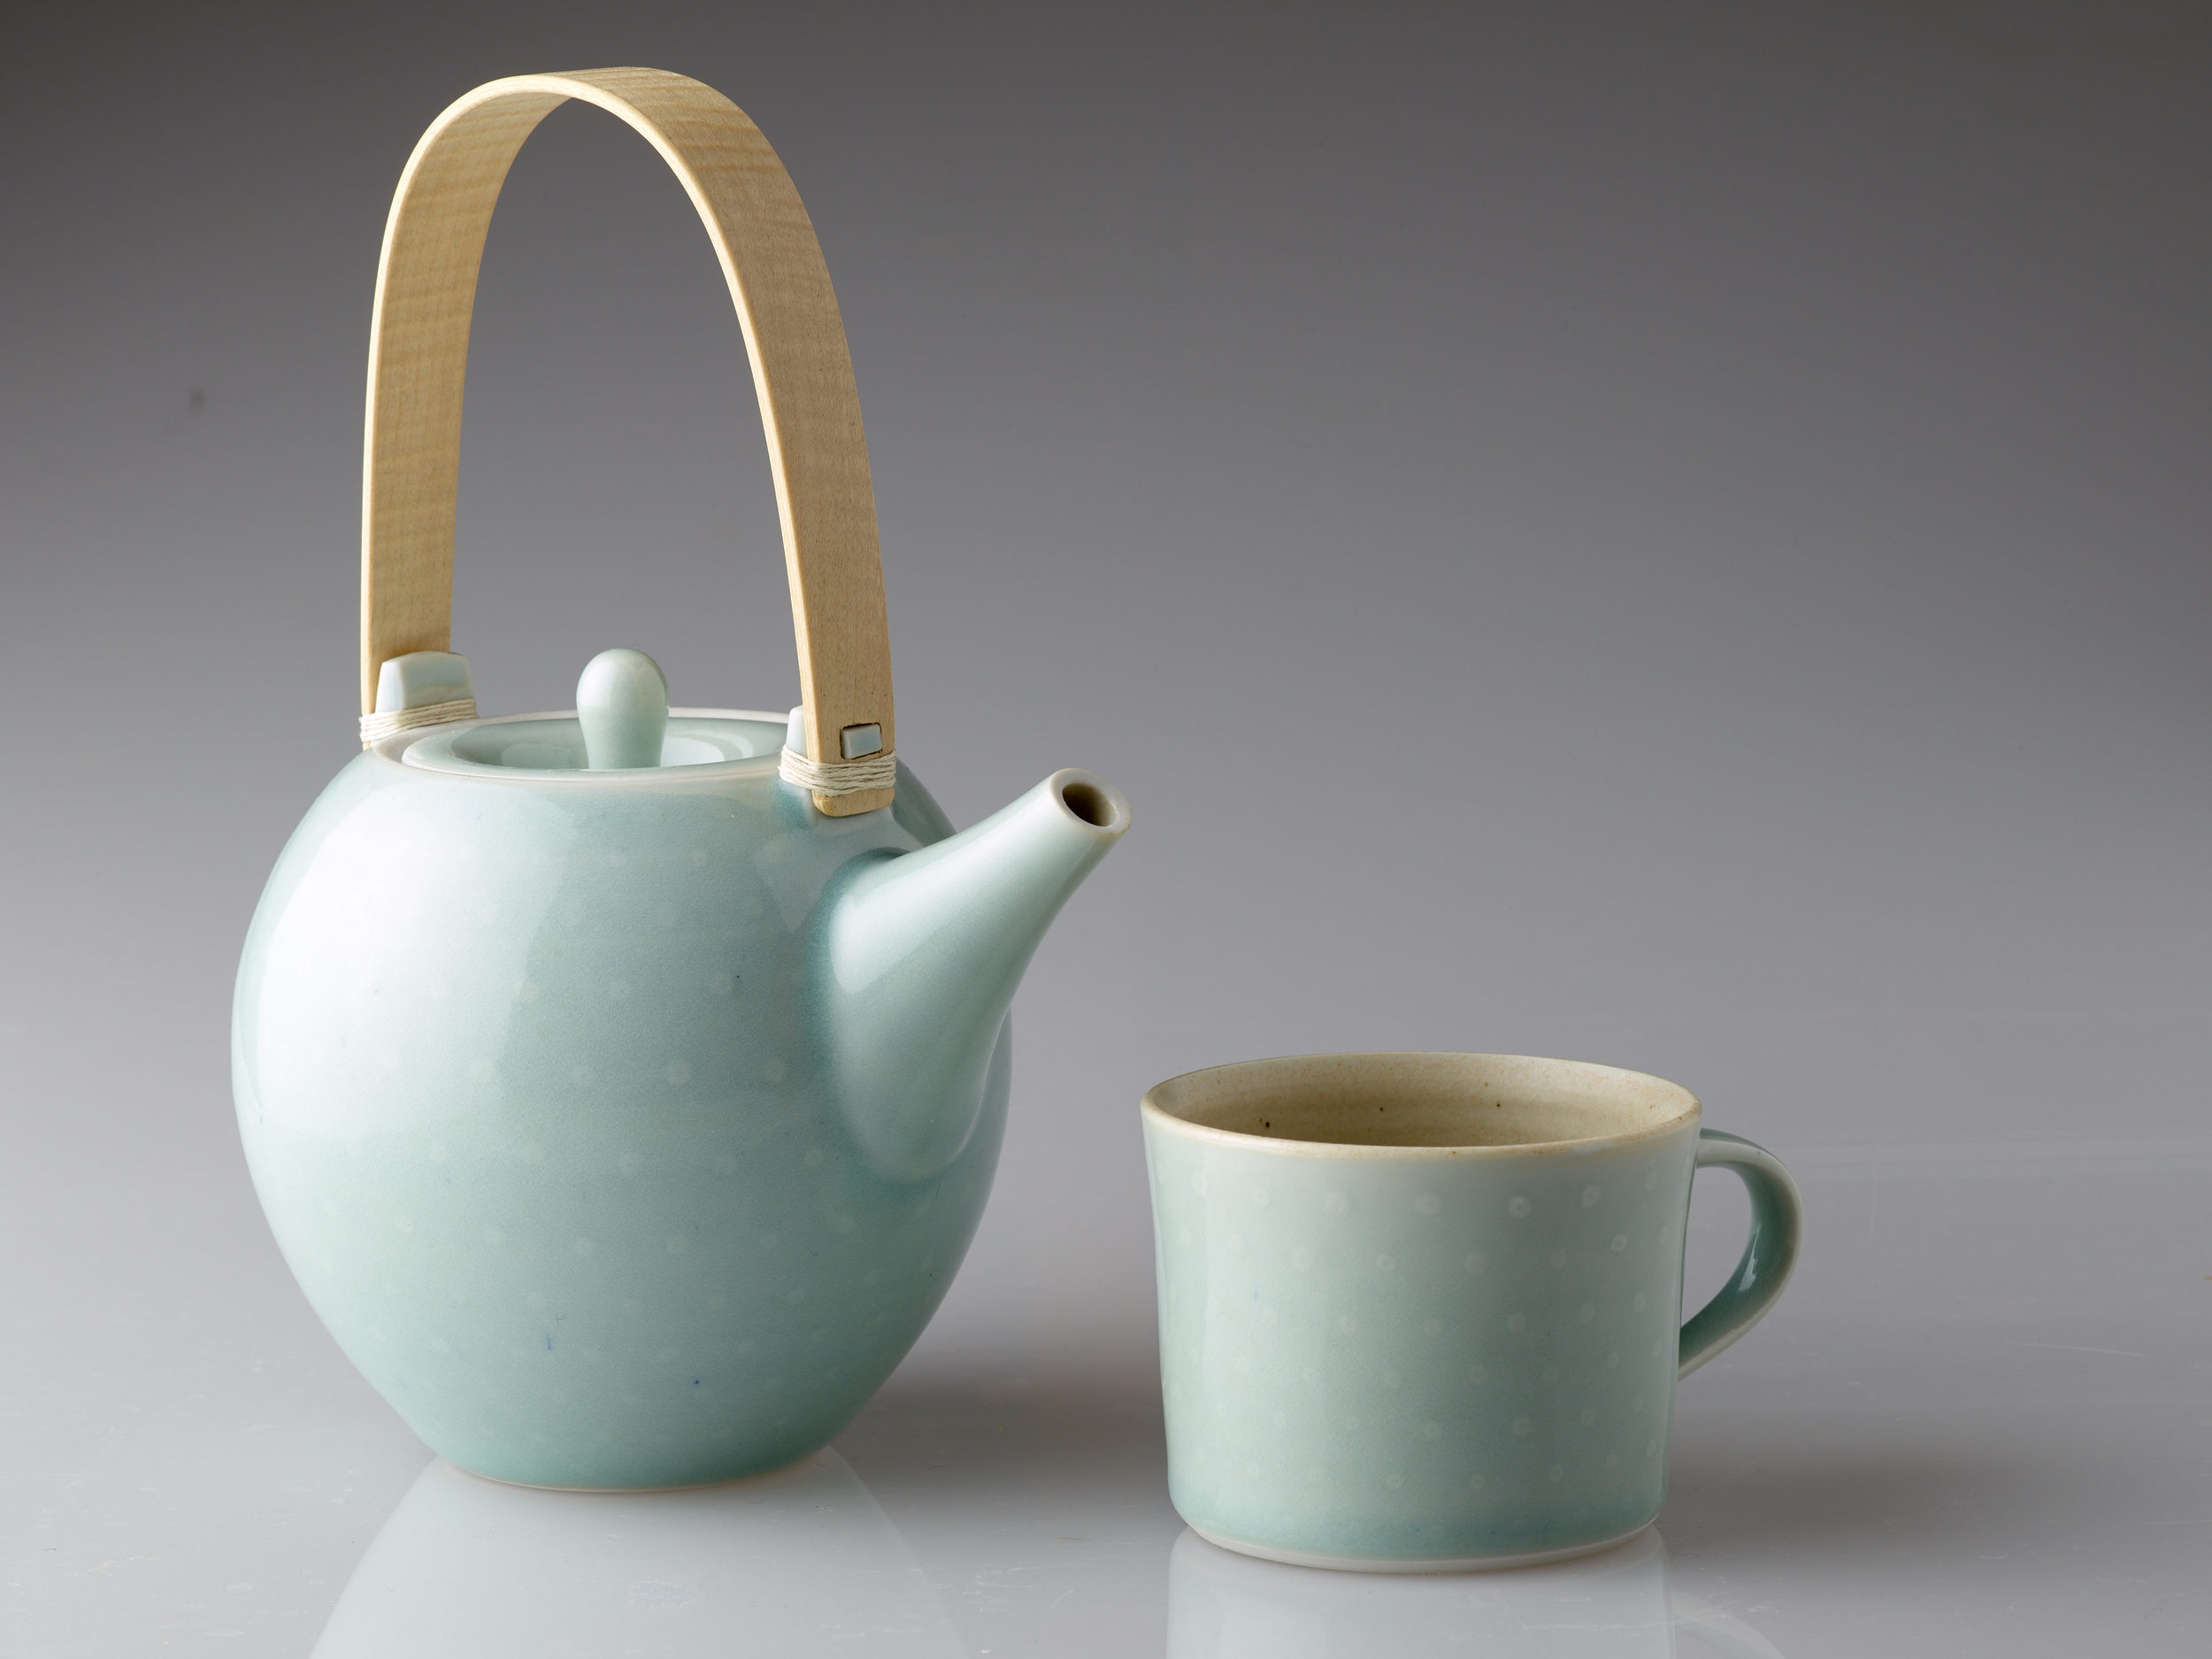 Celadon spot teapot with rippled maple handle